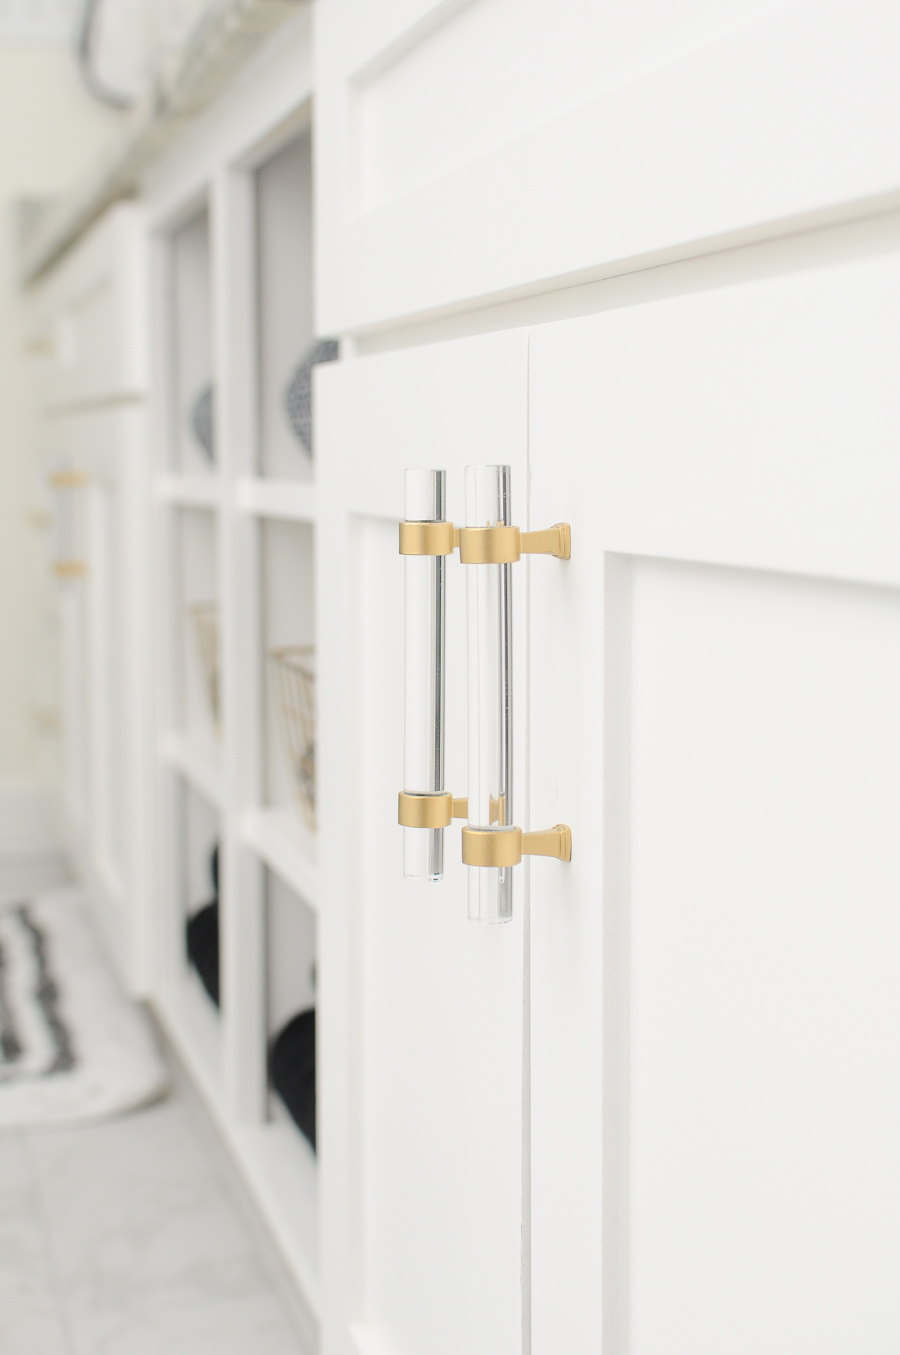 These gold or brass lucite pulls look fabulous against the white shaker cabinets in this master bathroom suite.